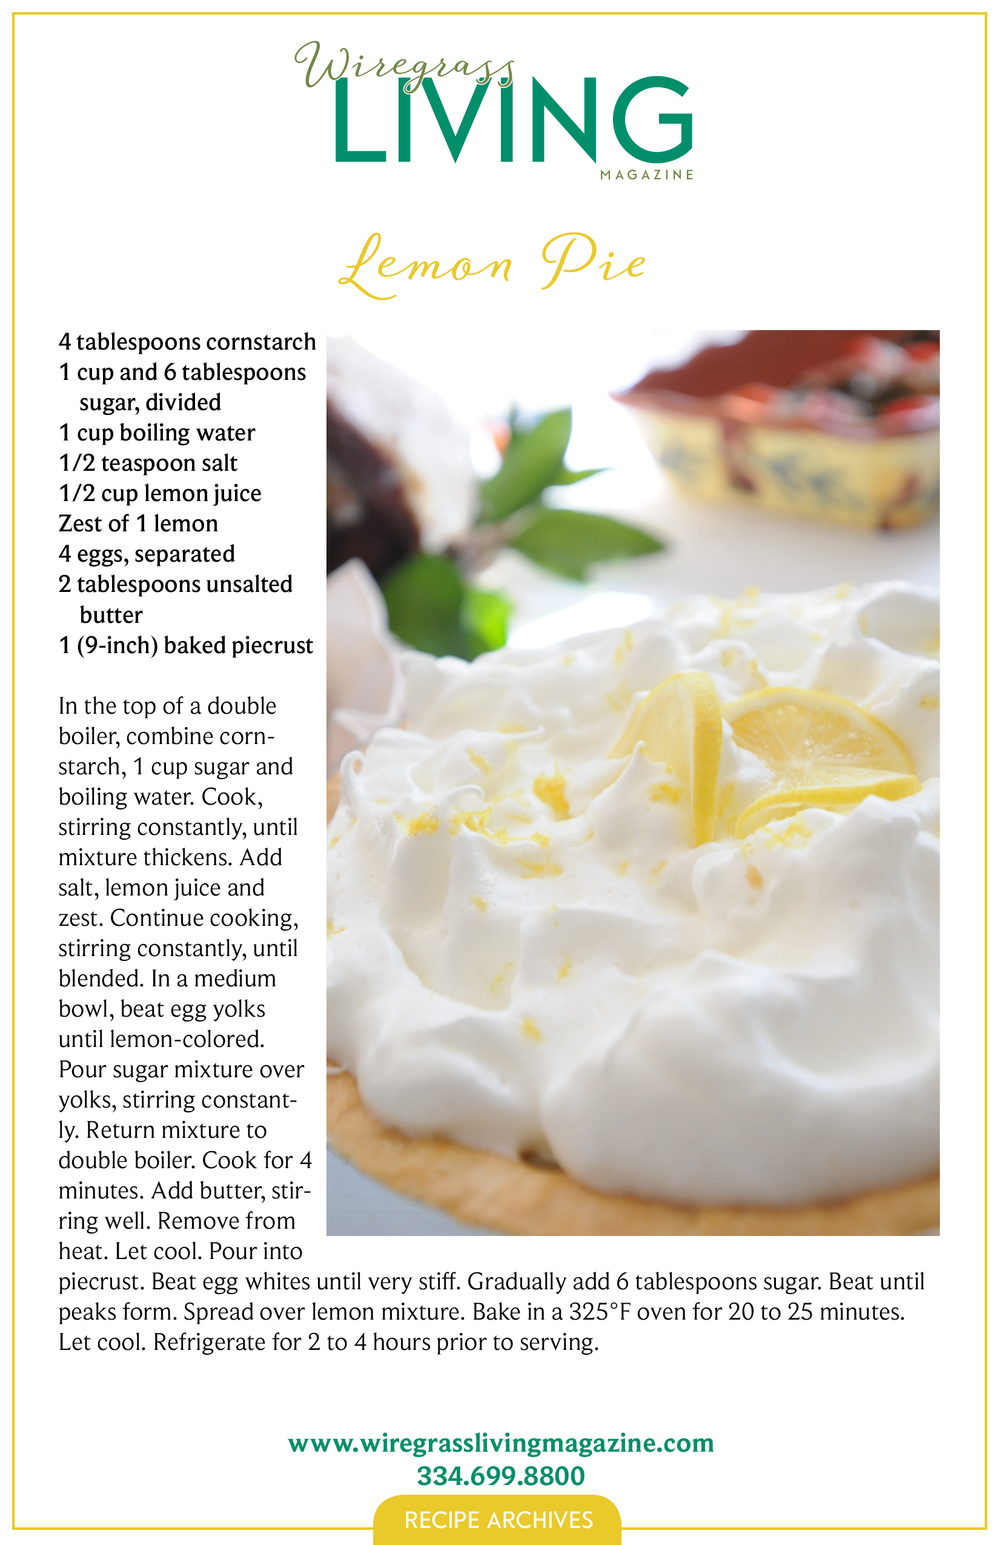 Lemon Pie, Wiregrass Living Magazine